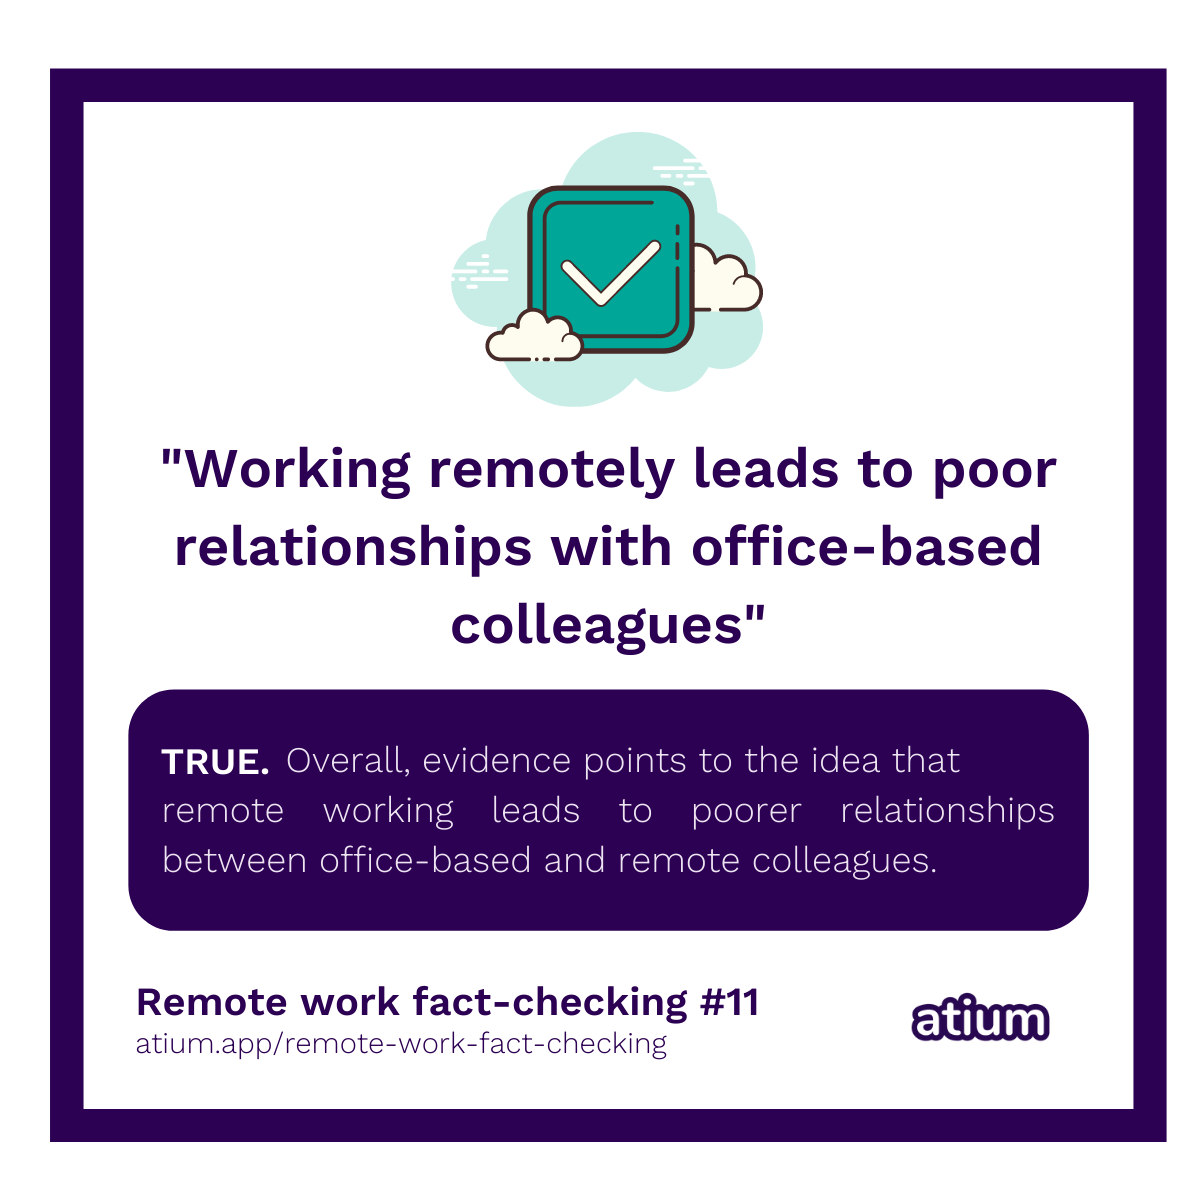 Working remotely leads to poor relationships with office-based colleagues